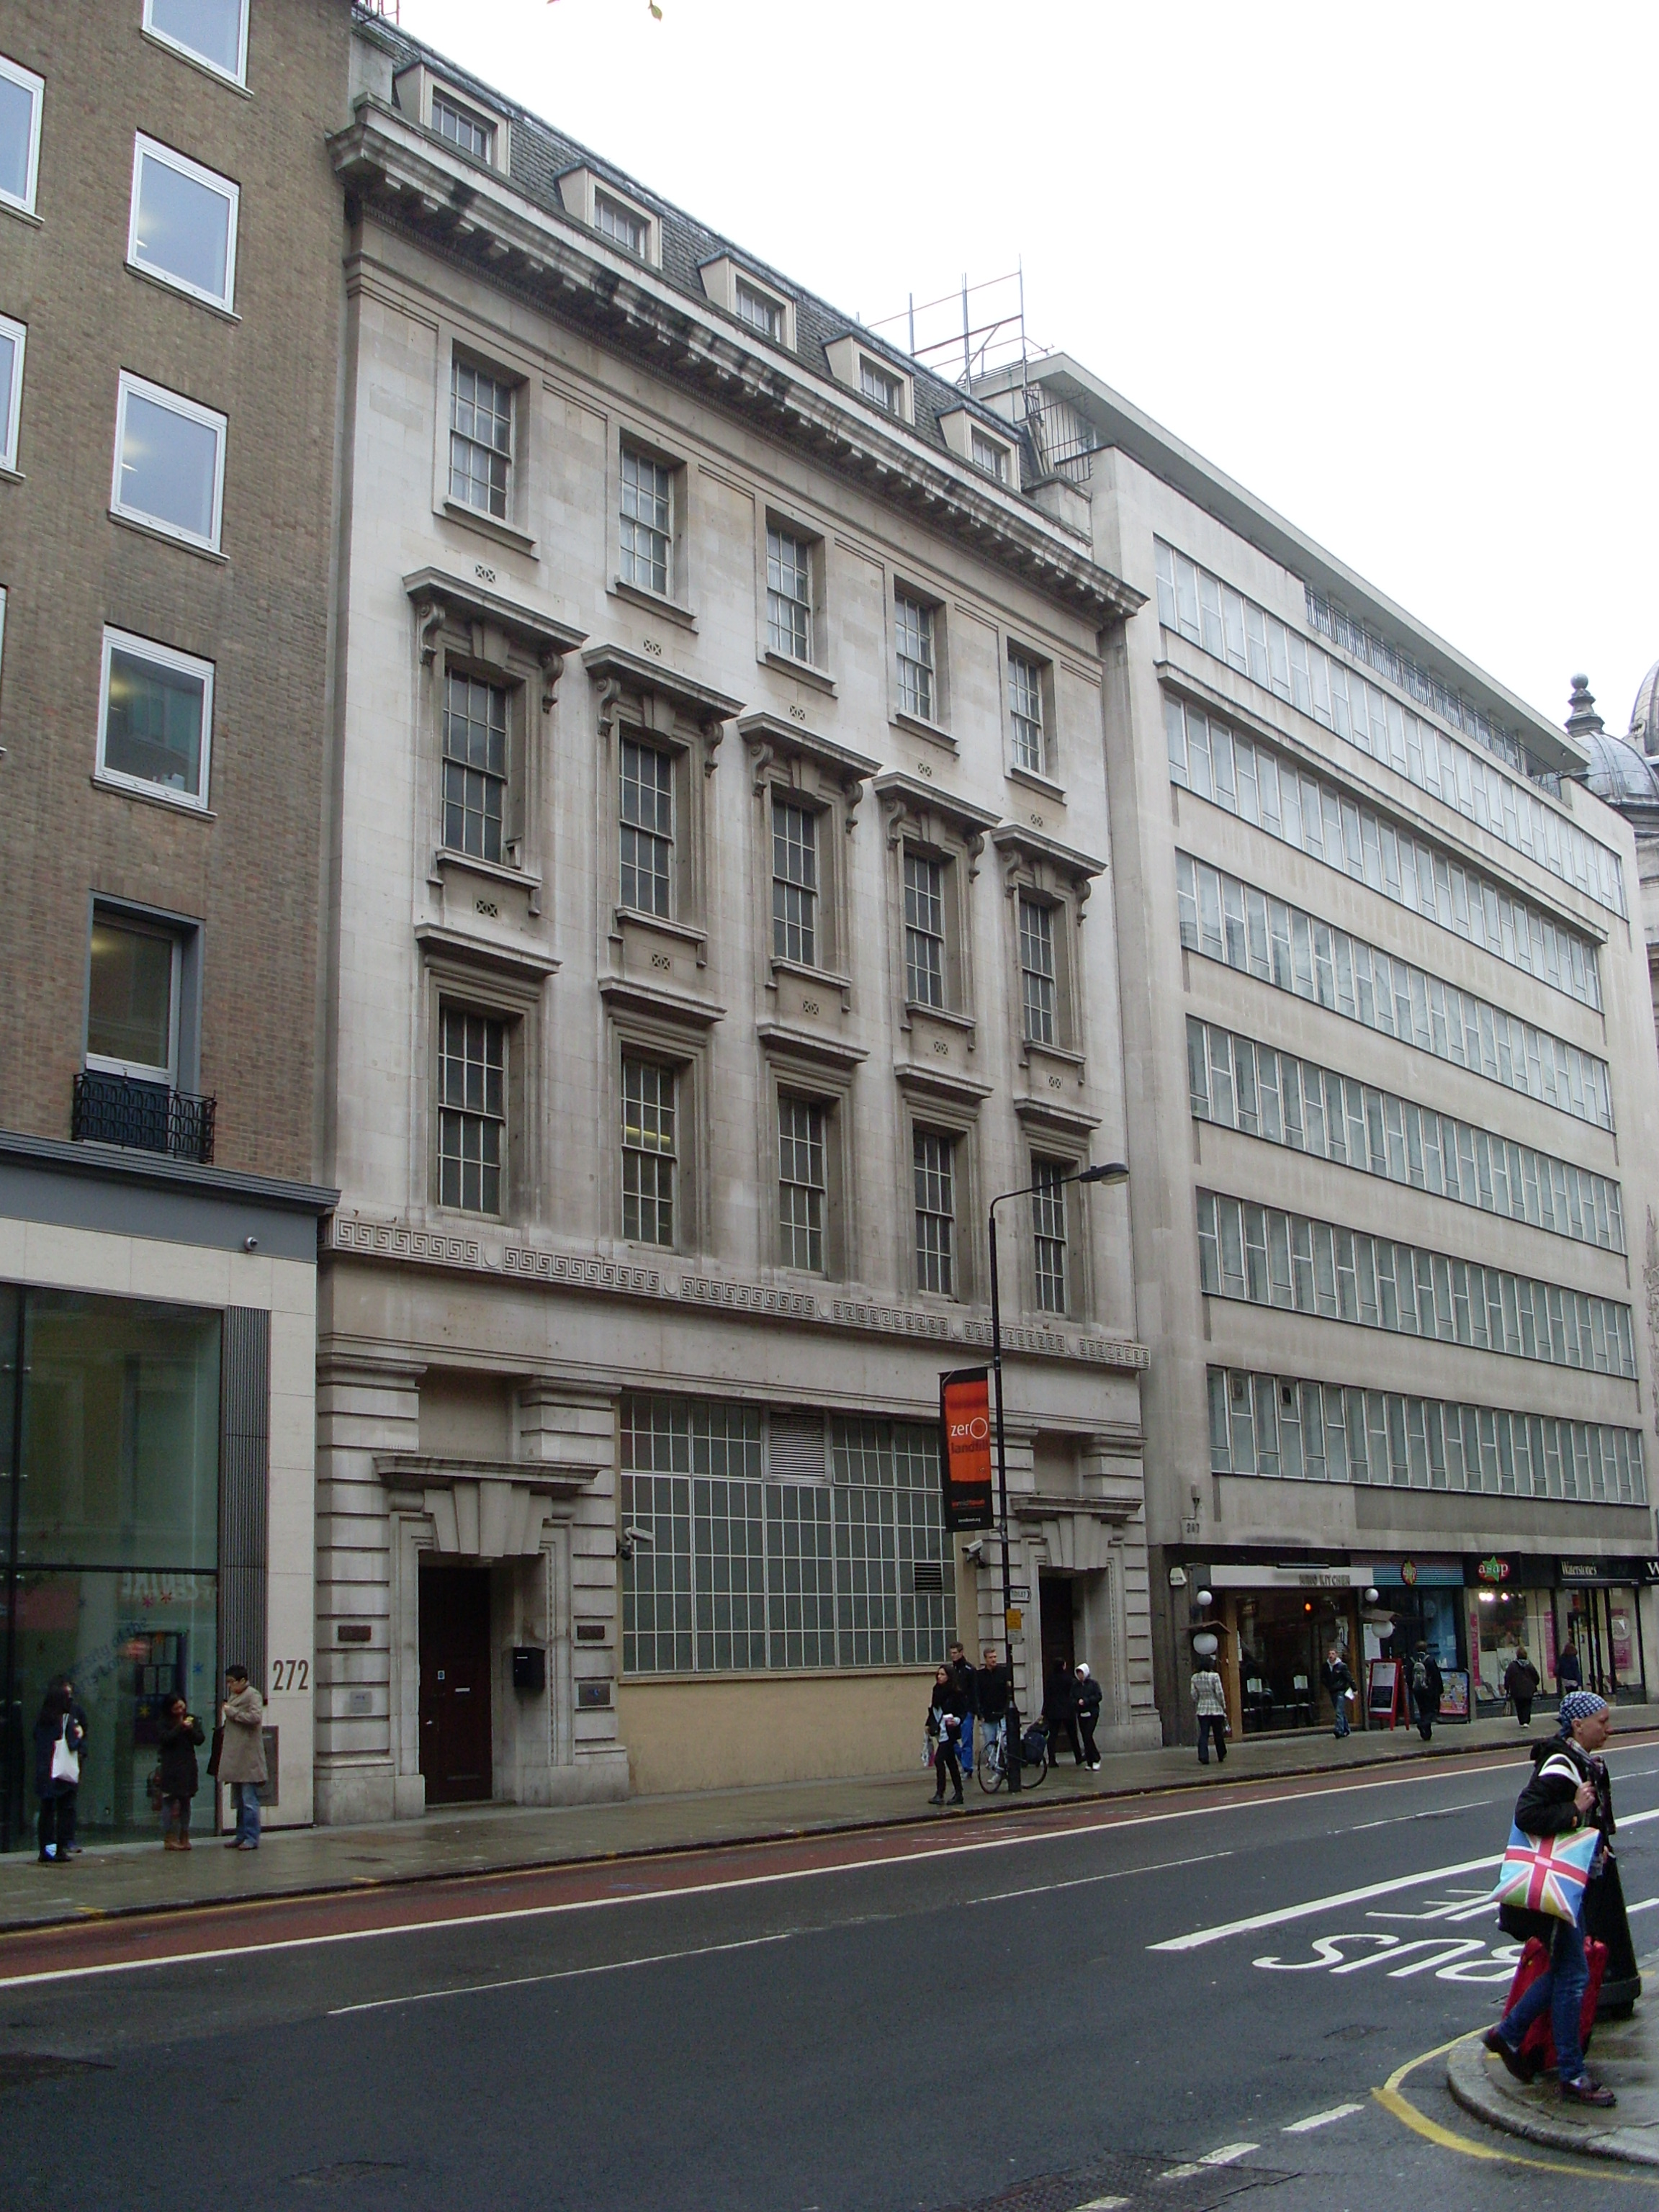 BT Archives - Wikipedia